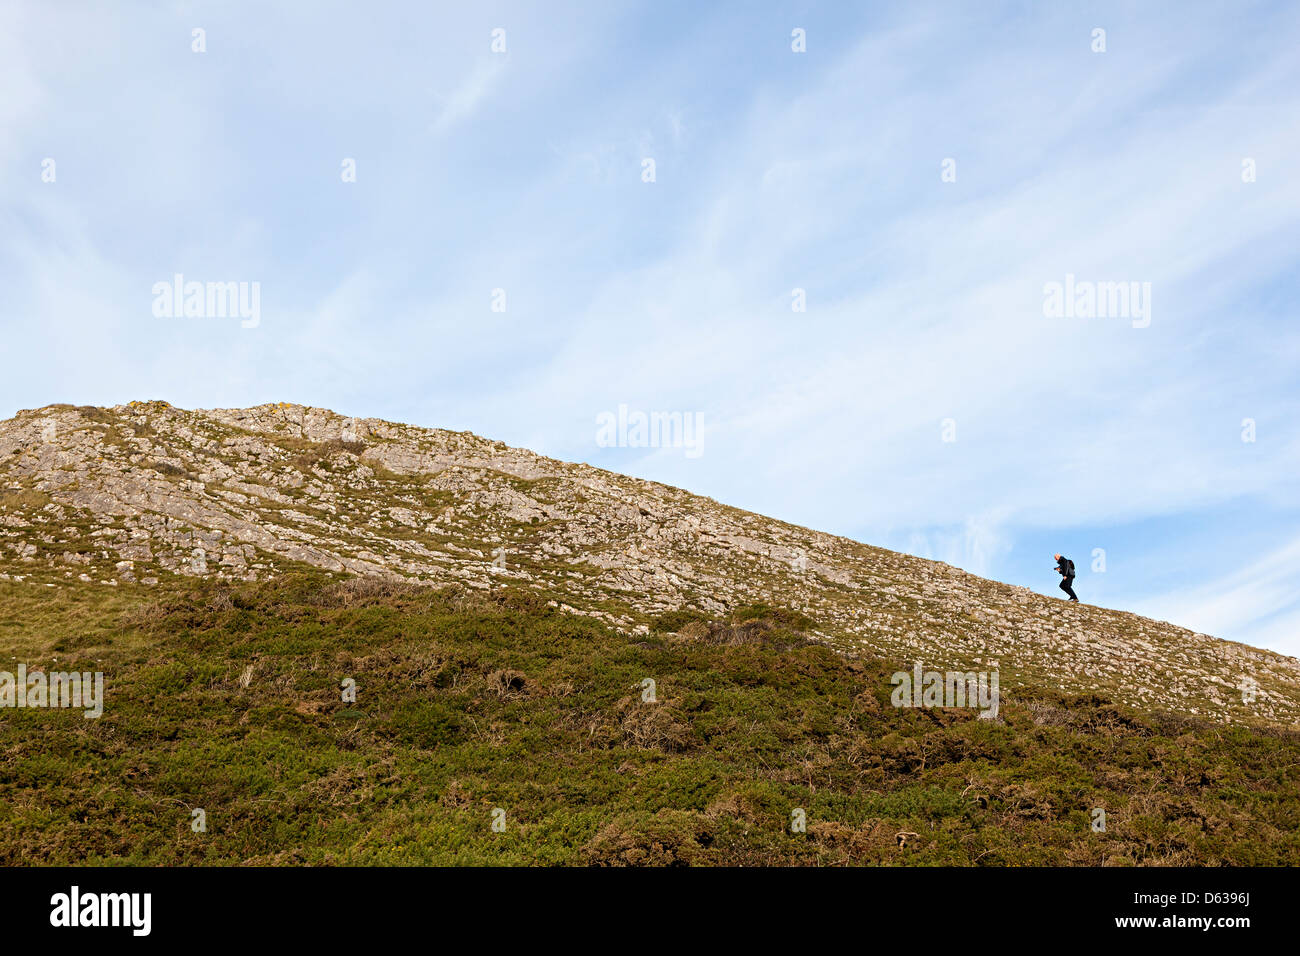 Person walking up slope on Worm's Head, Rhossili, Gower, Wales, UK - Stock Image